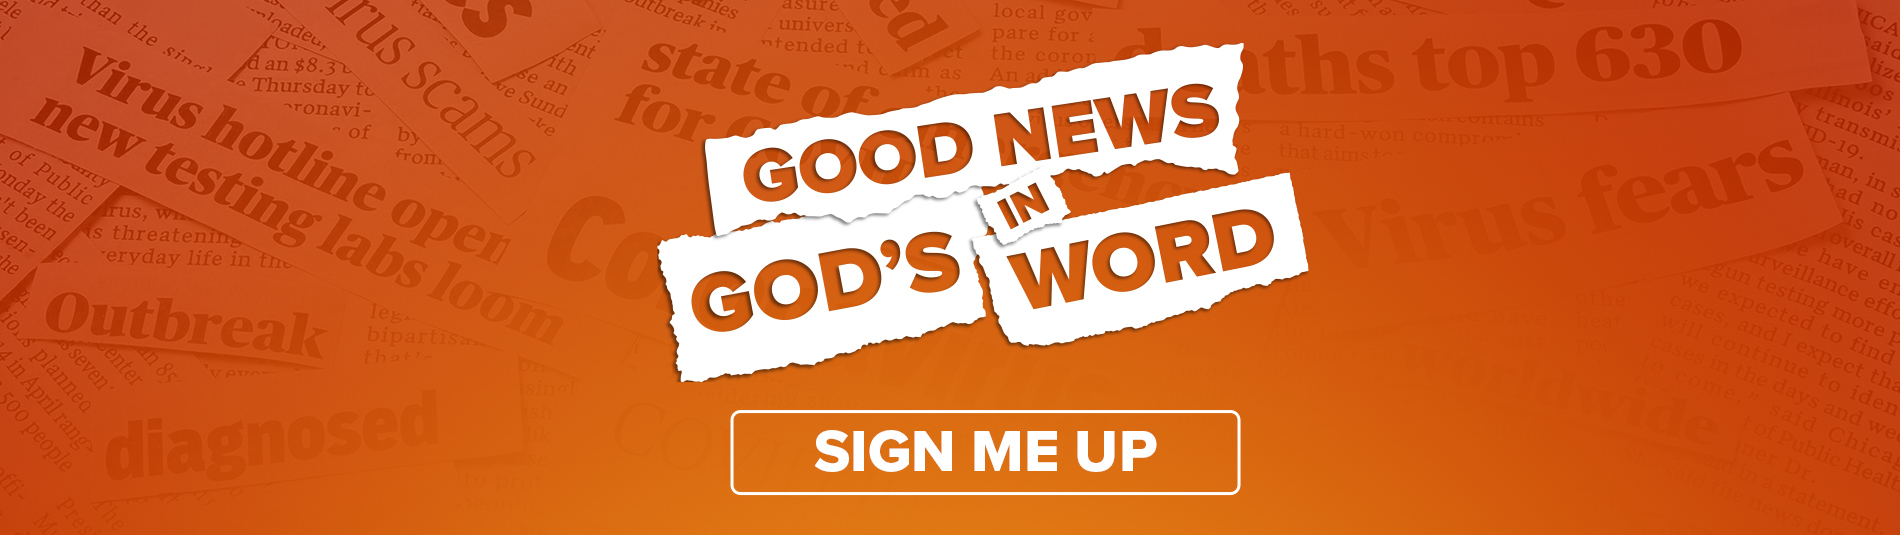 Good News in God's word - Sign me up